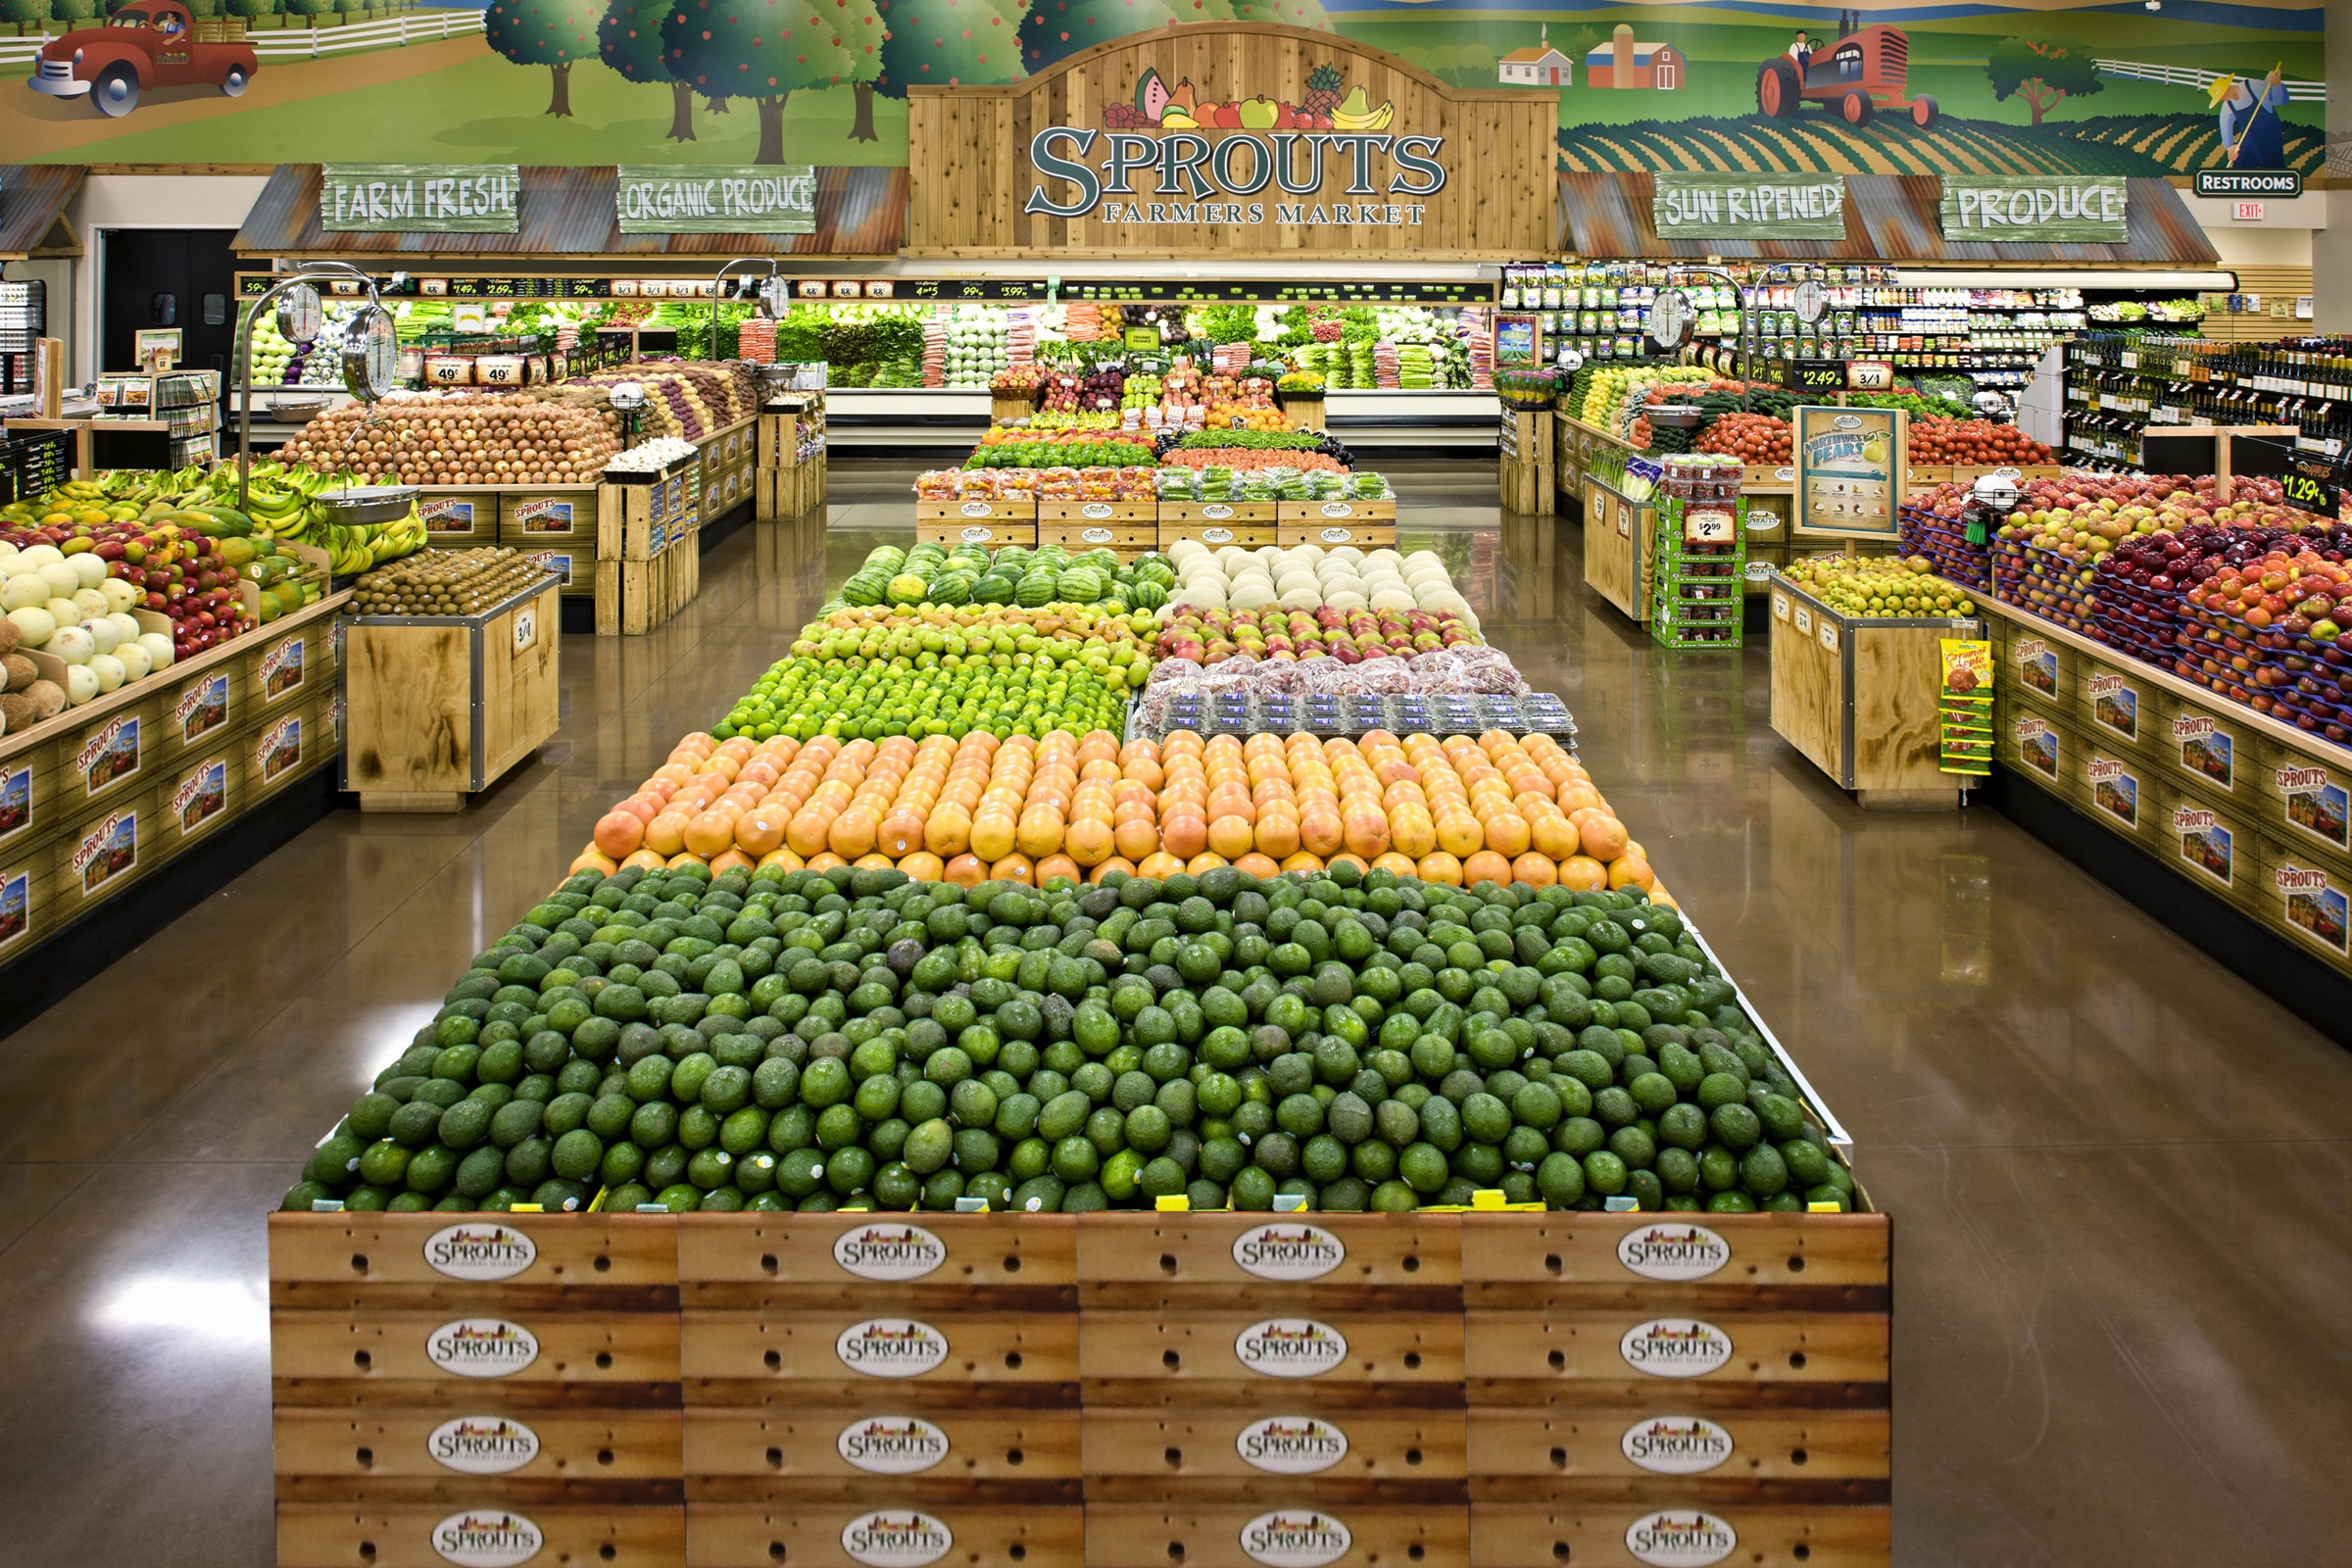 Wide pan shot of the produce section of a Sprouts Farmers Market store